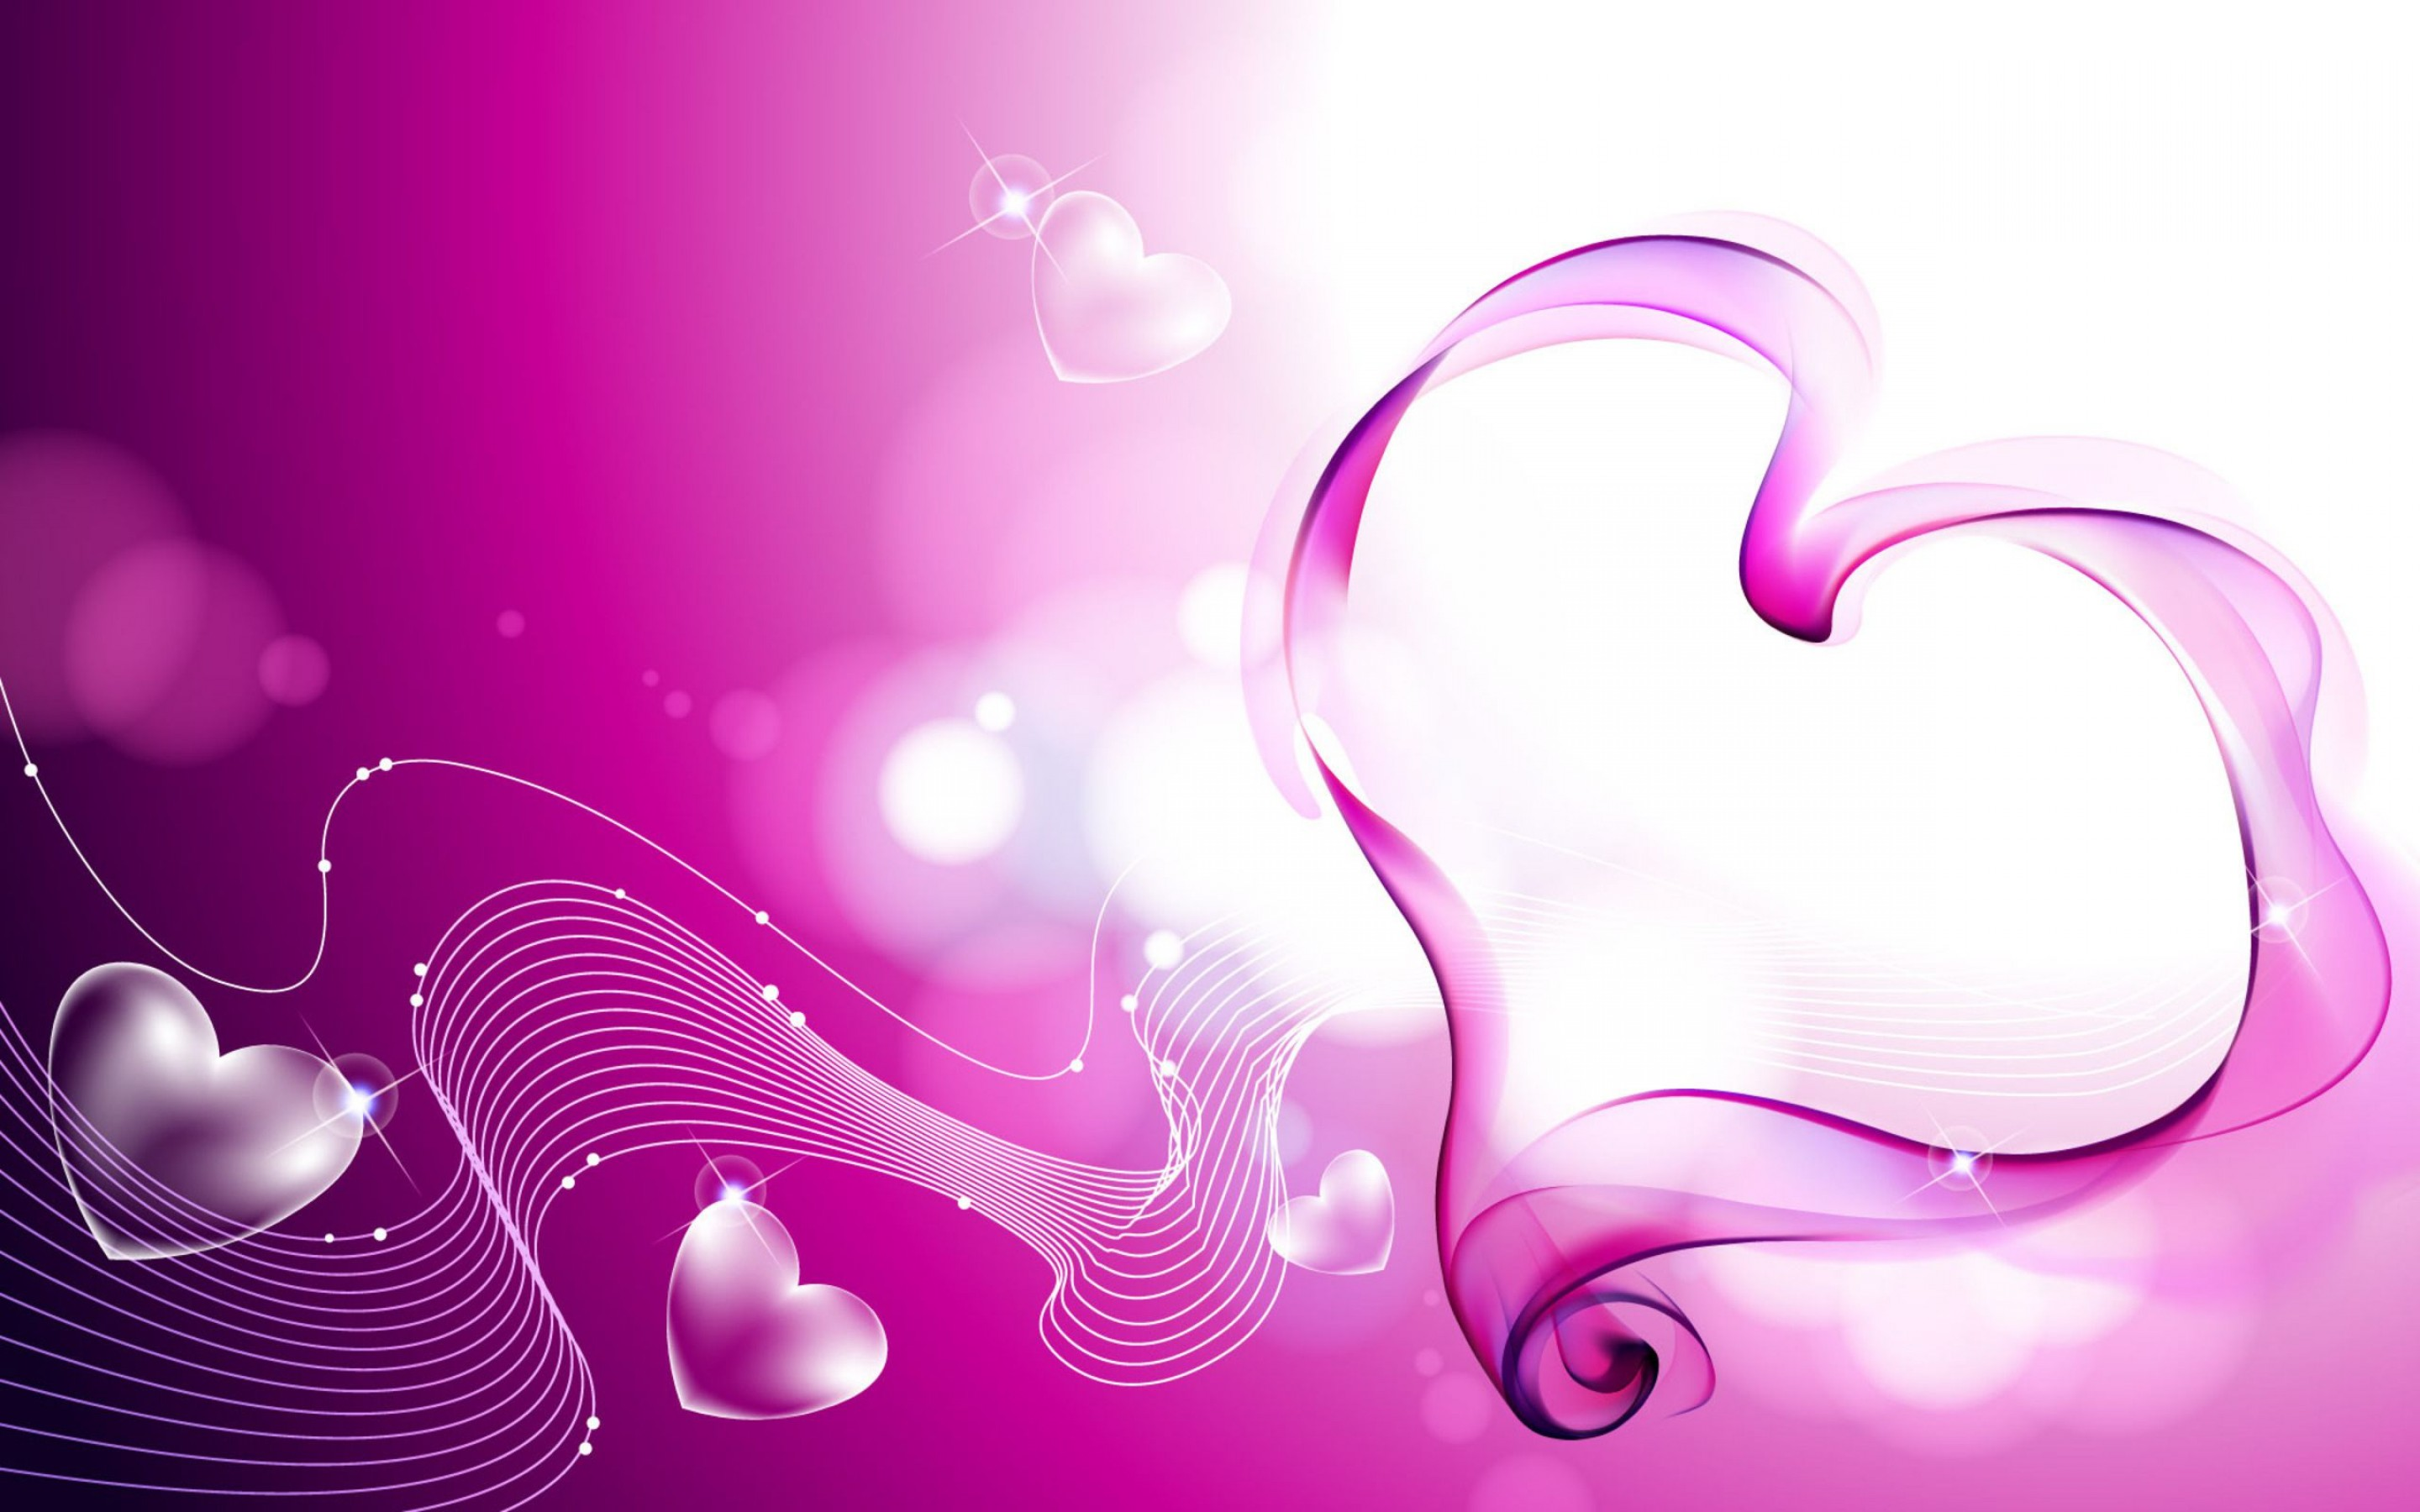 heart wallpapers purple background